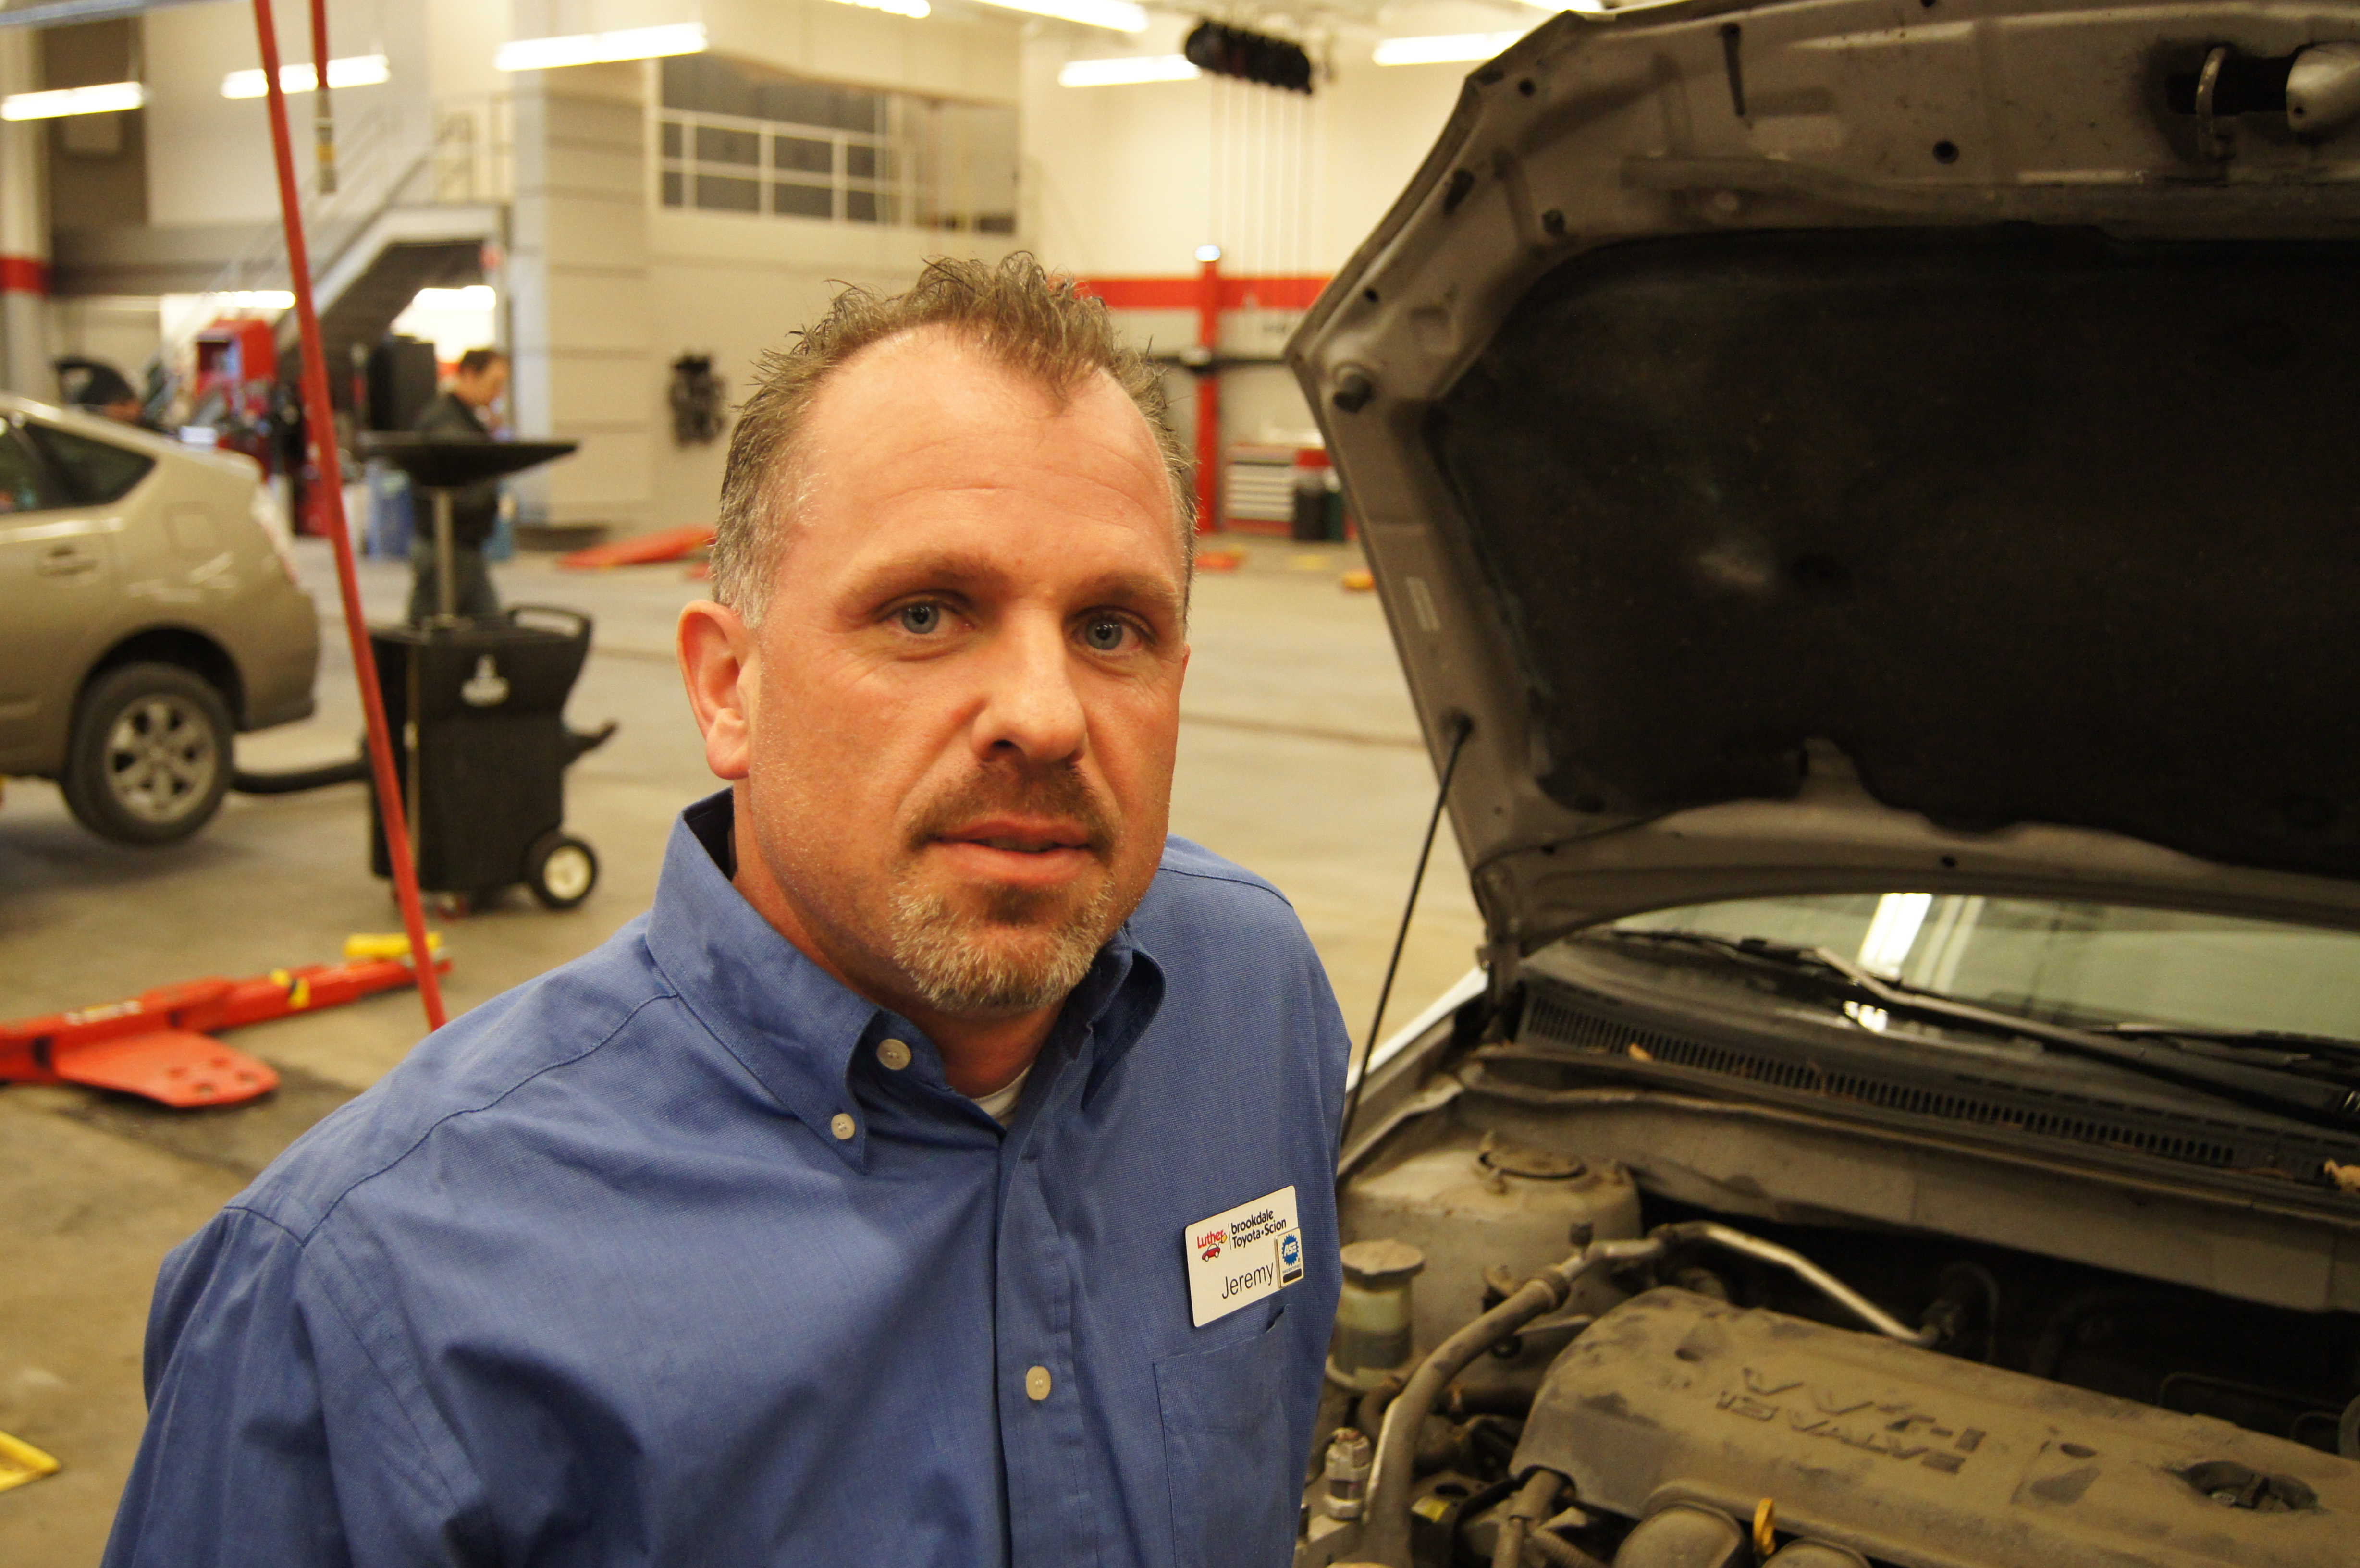 No Lack Of Surprises Dealerships Handle Anything Cars